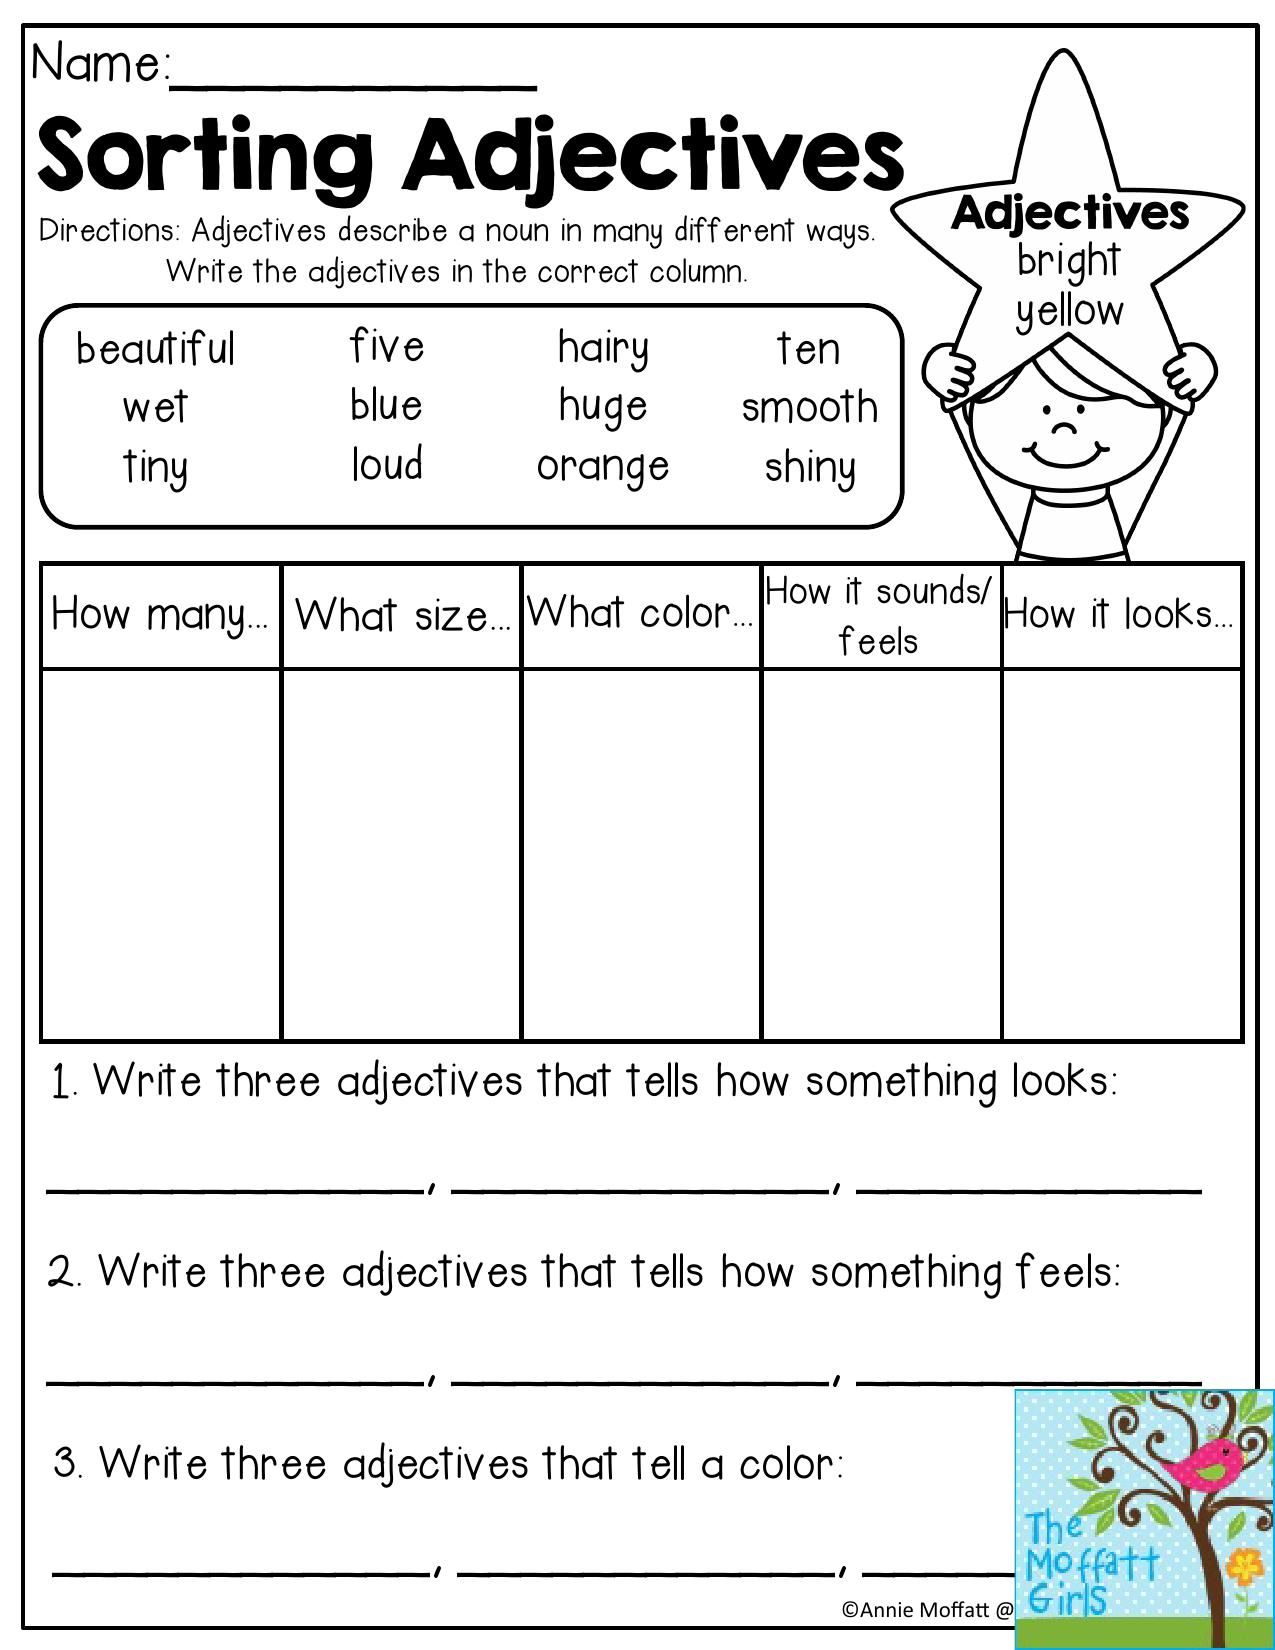 Sorting Adjectives Adjectives Describe A Noun In Many Different Ways Write The Adjectives In